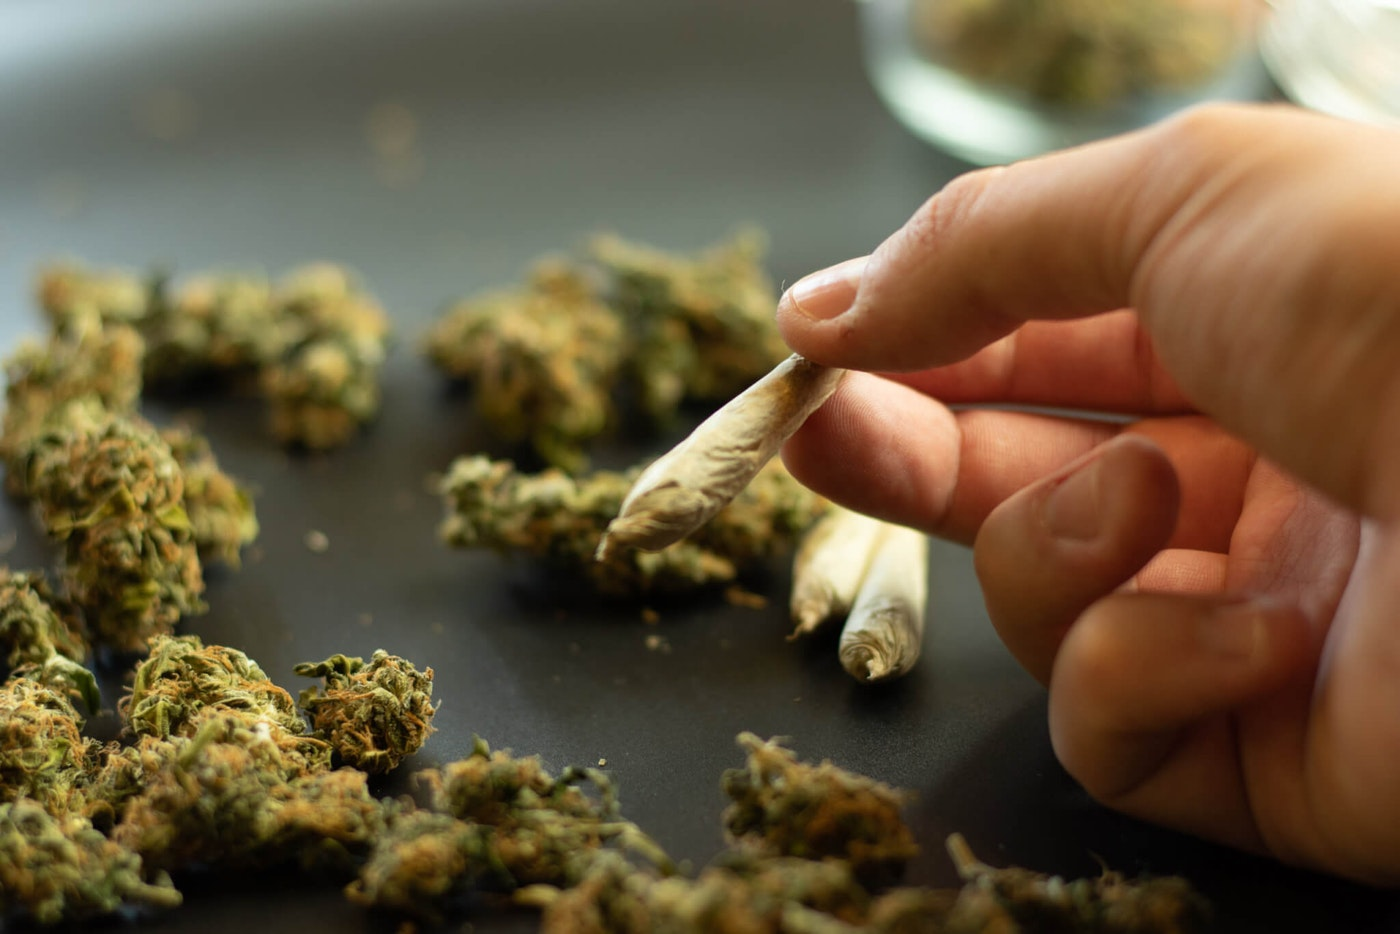 A racial justice task force recommended that North Carolina decriminalize marijuana possession.